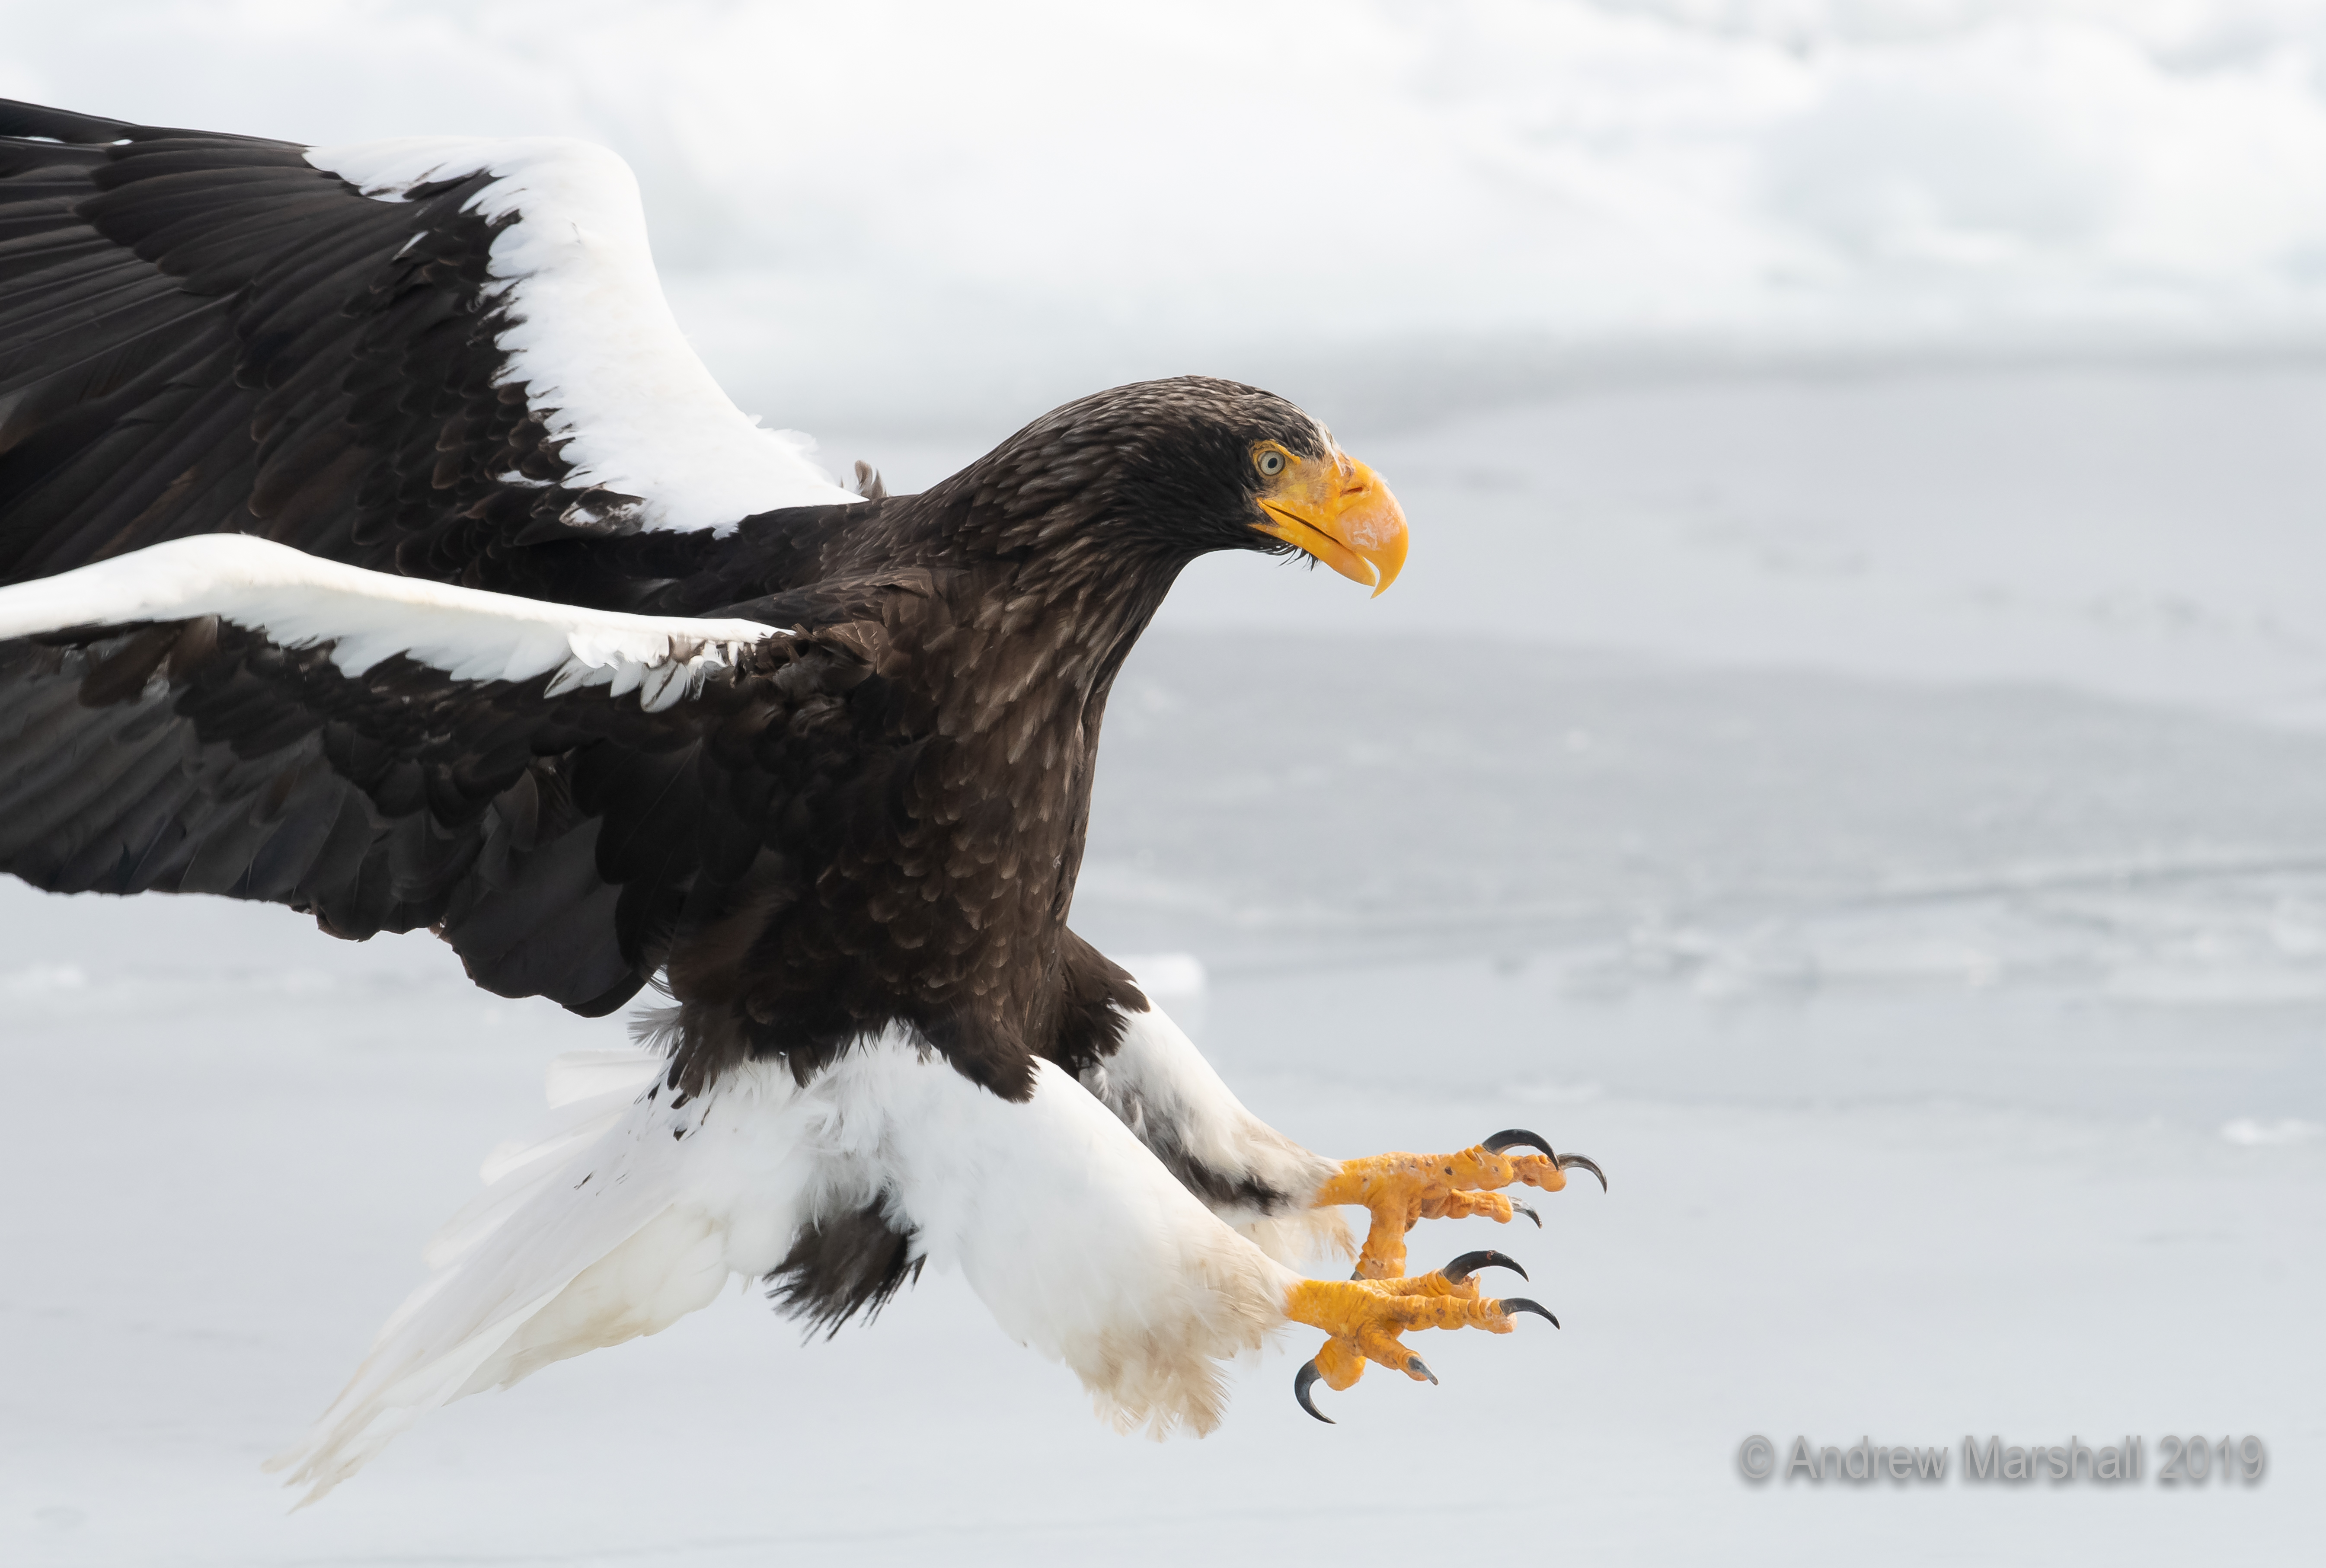 Talons out!